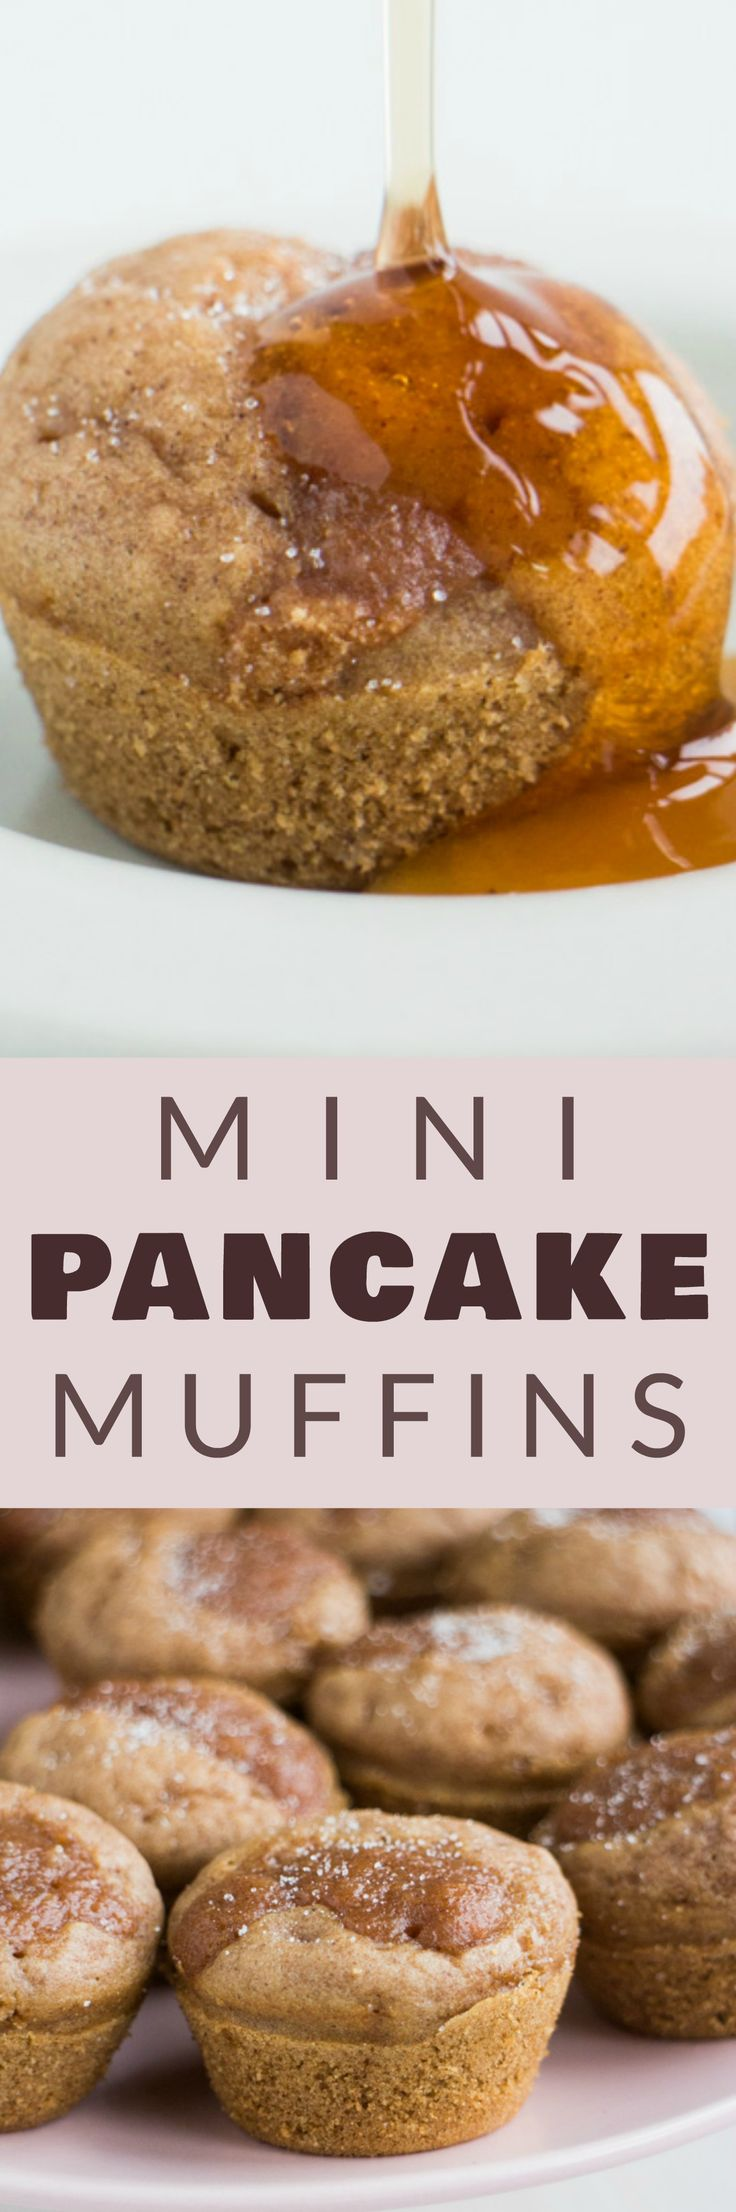 You'll love this EASY Dairy Free Mini Pancake Muffins recipe! These pancake muffins don't require butter or milk and are perfect for breakfast or snacking! Each muffin has a sugar mixture crumble made with brown sugar and applesauce on top! I love serving them with maple syrup! This recipe is easy to make completely vegan too!